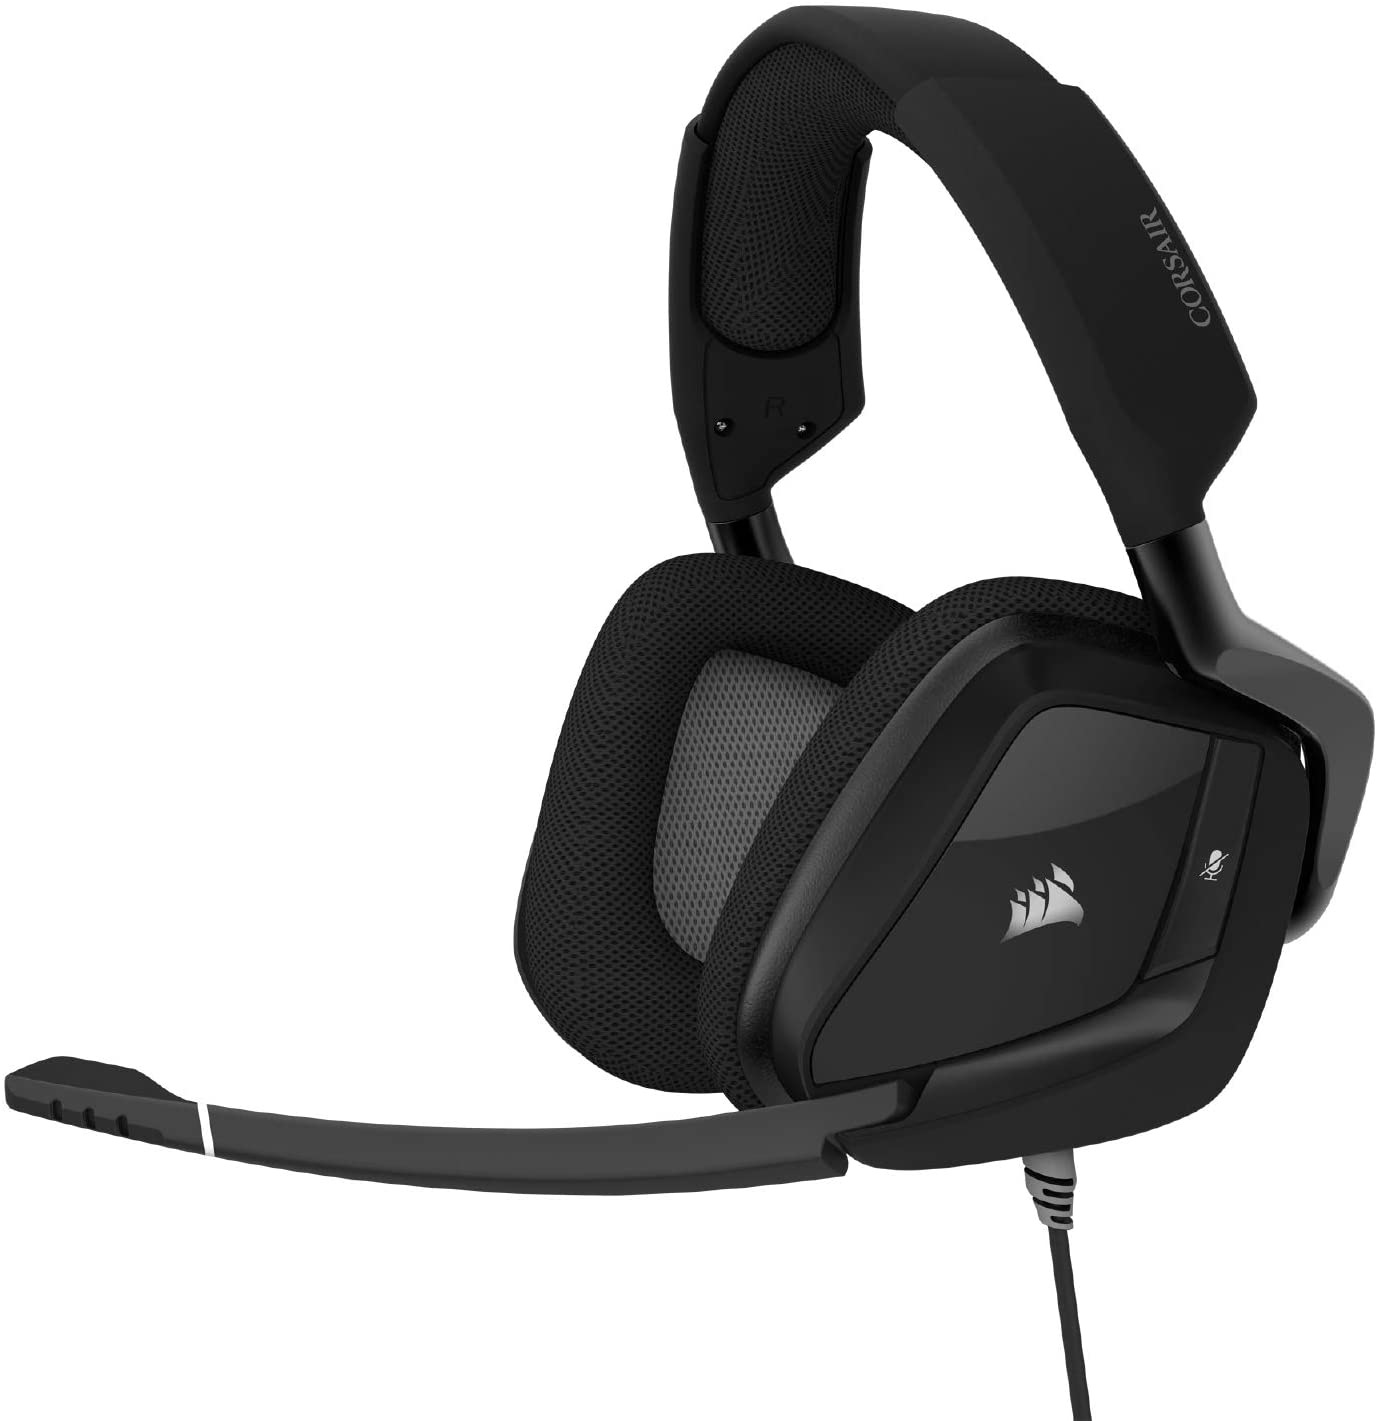 Top 5 best RGB Gaming headsets under $100 3